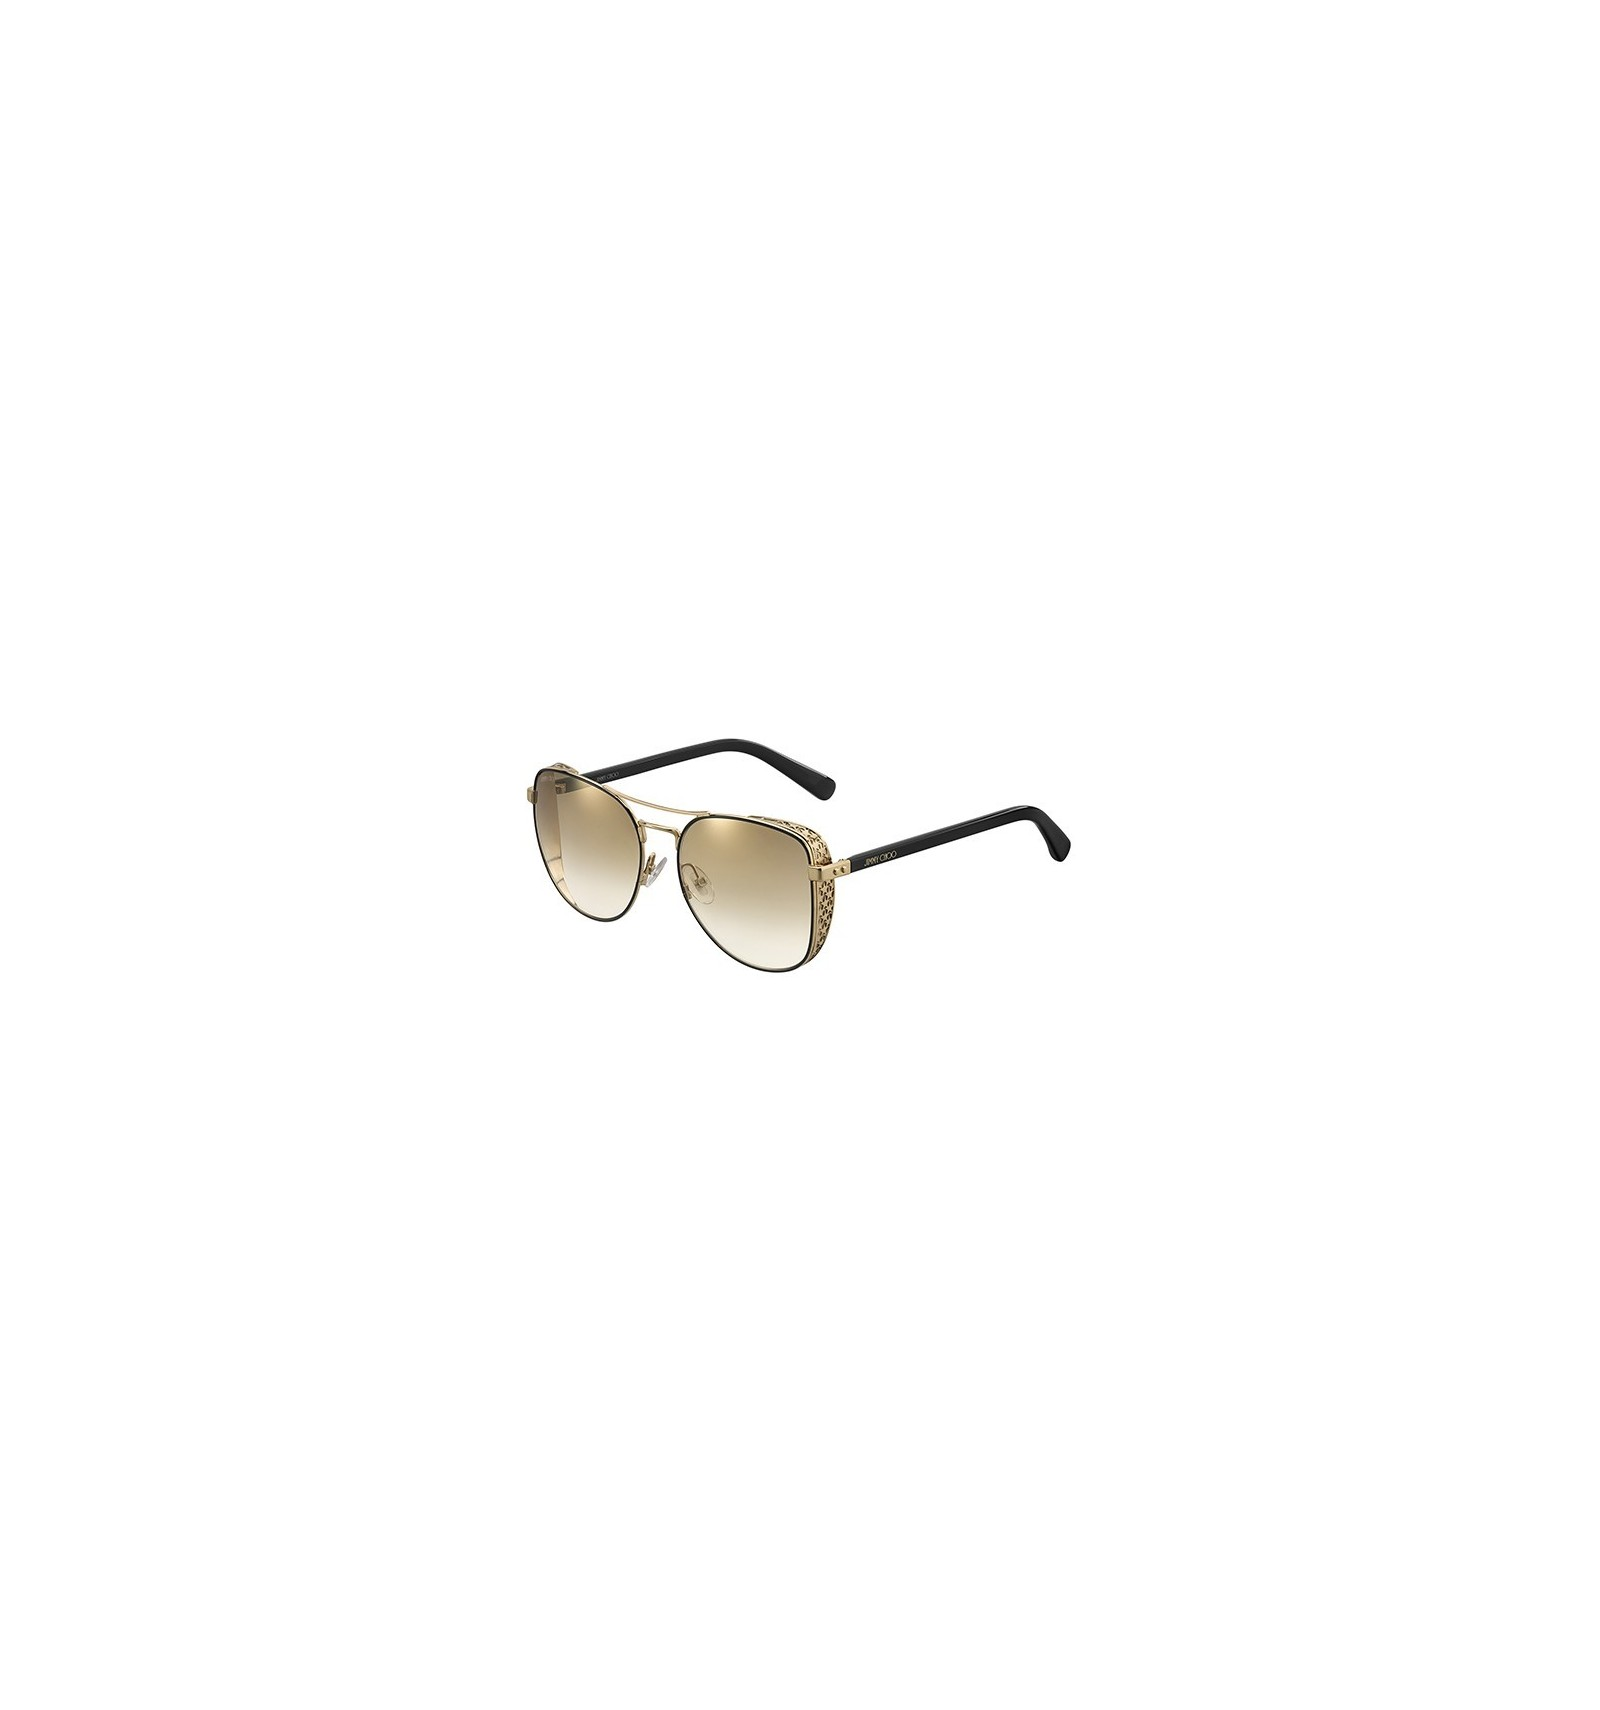 a638e20d00578 Gafas de sol JIMMY CHOO SHEENA Gold - Brown Shaded.Compra online